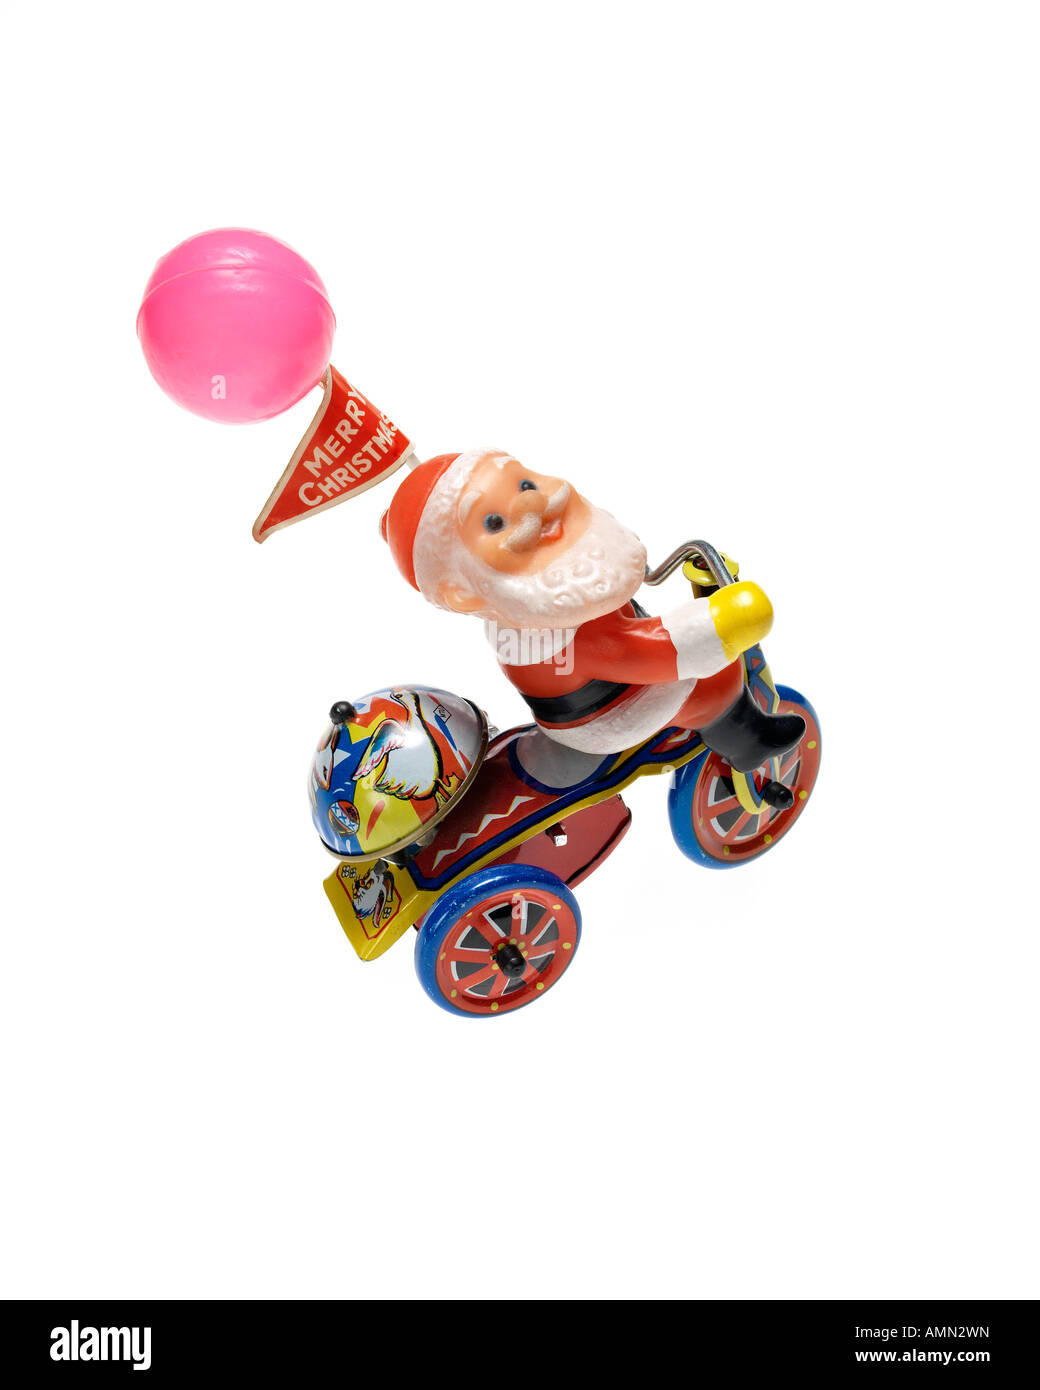 Santa Claus metal wind up toy on white background - Stock Image